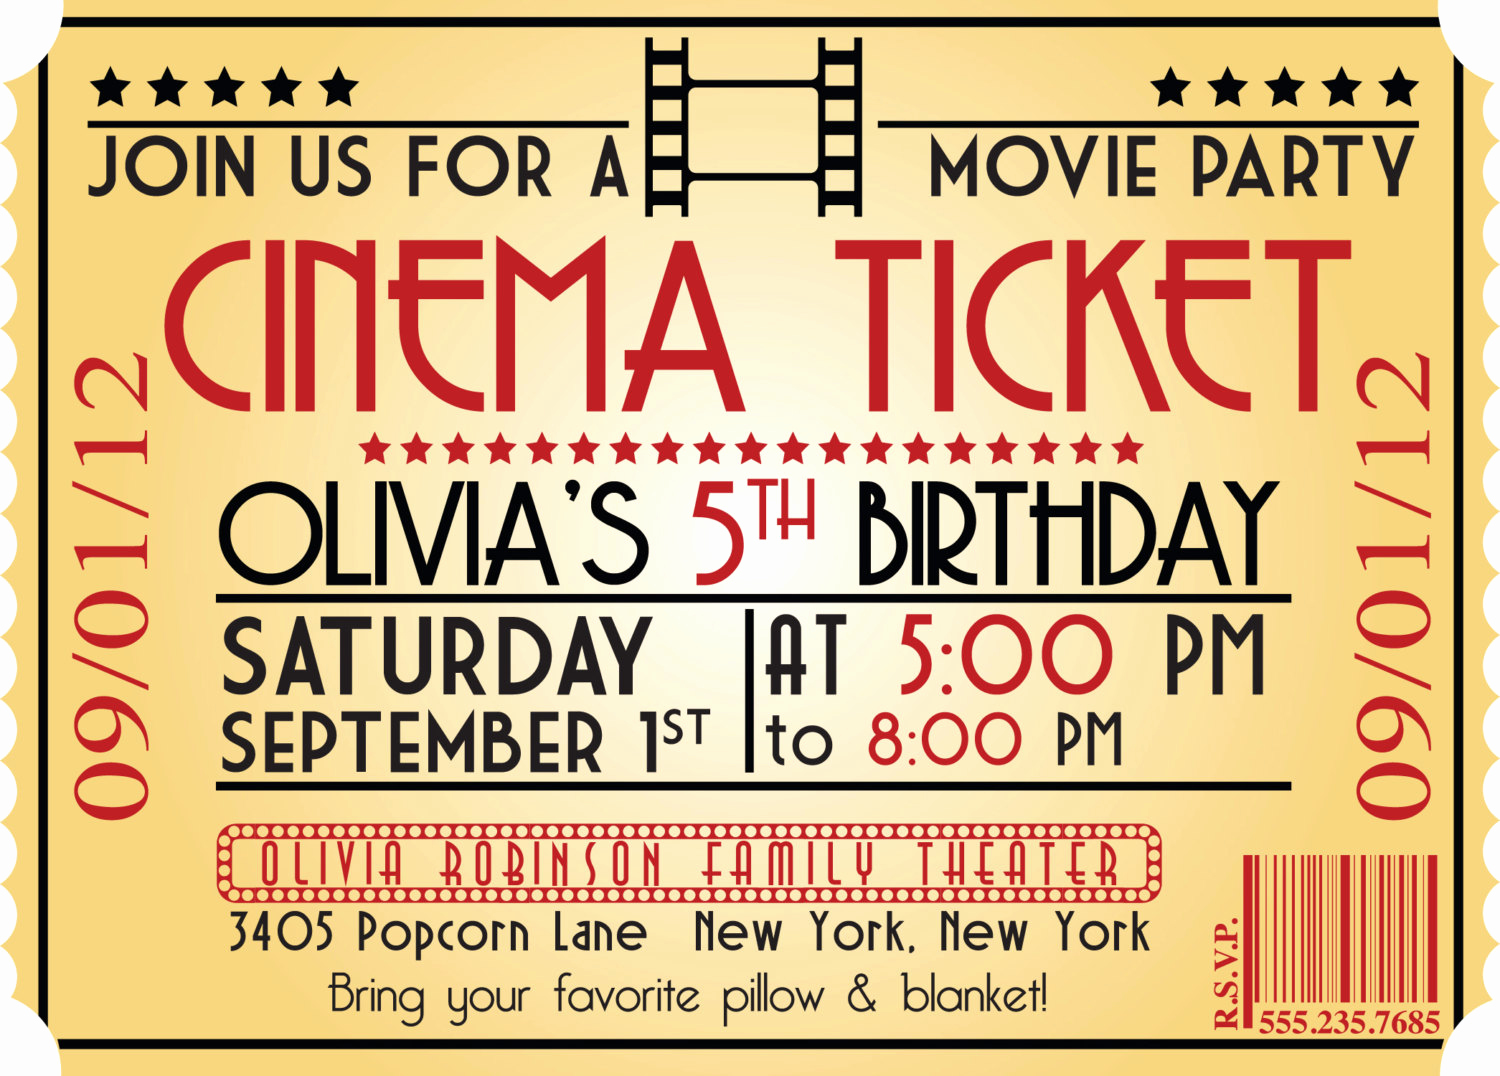 Movie Ticket Invitation Template Inspirational Movie Ticket Birthday Invitations Ideas – Bagvania Free